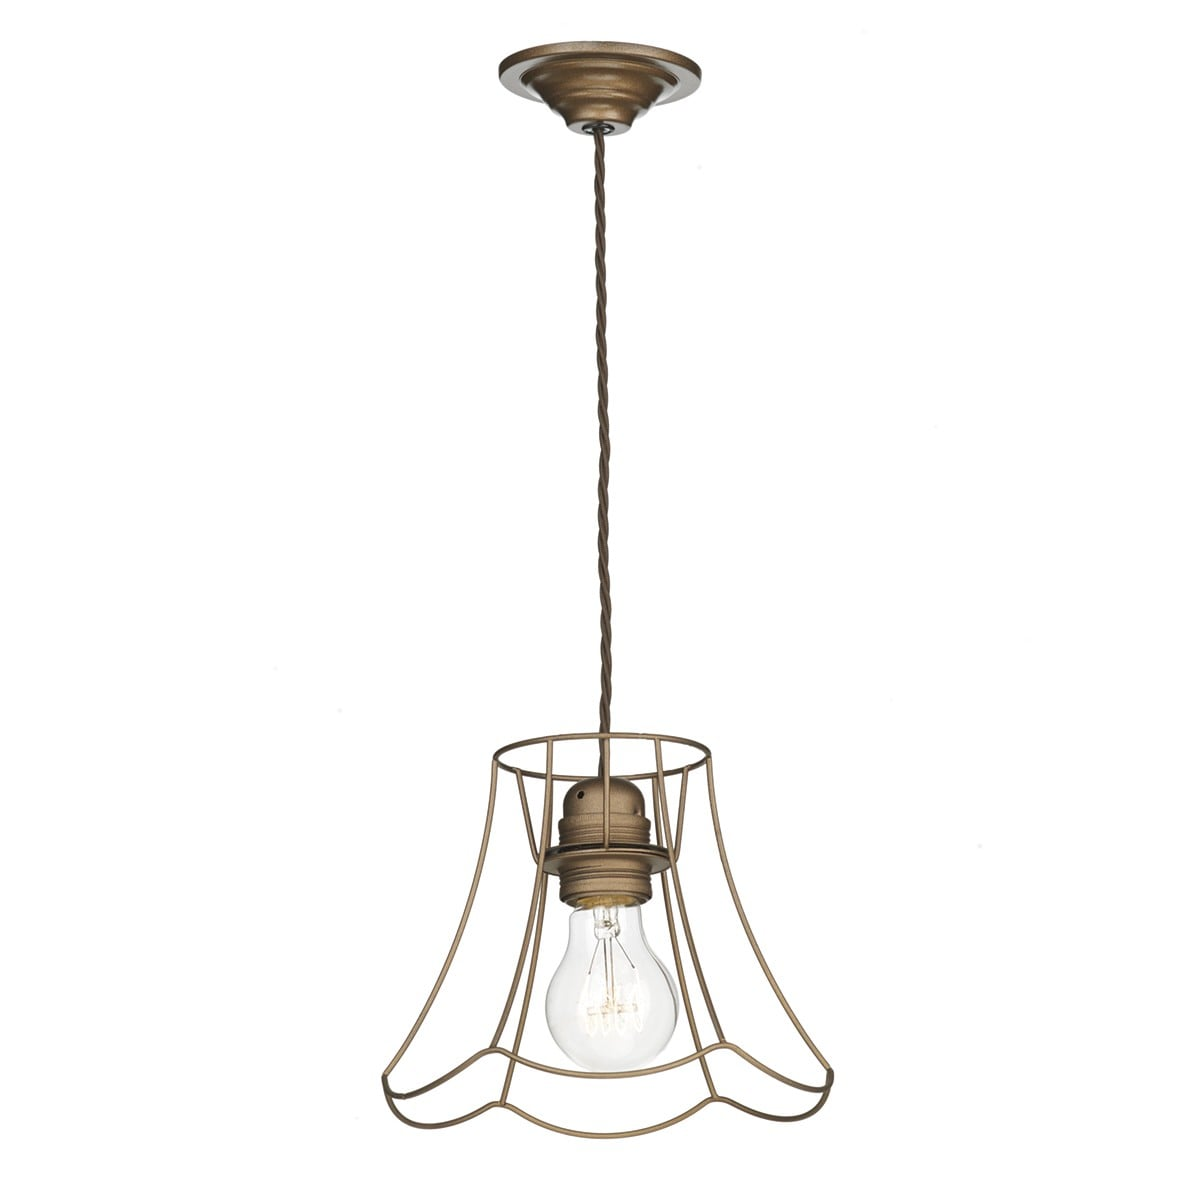 David Hunt Lighting ORE0163 Oregon 1 Light Small Pendant in bronze